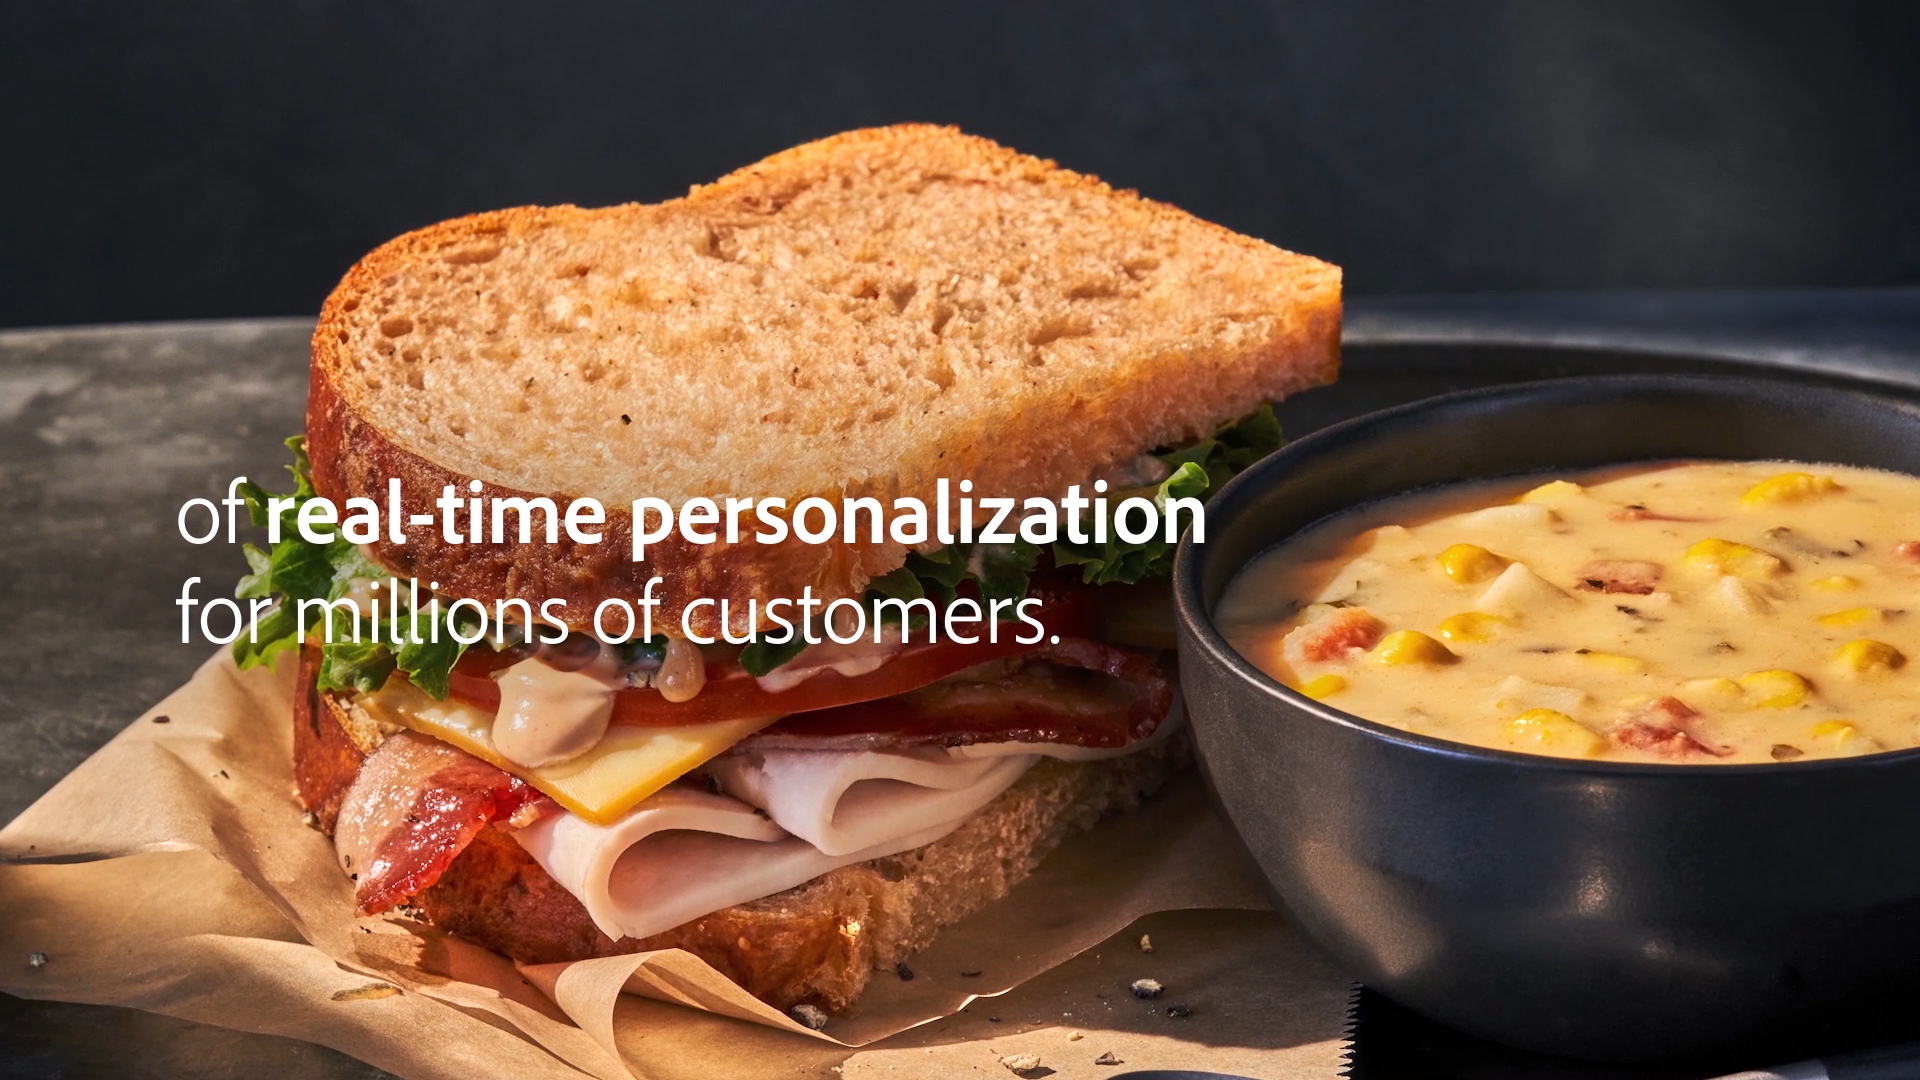 Panera and Adobe are redefining fast-casual dining for digitally savvy customers.